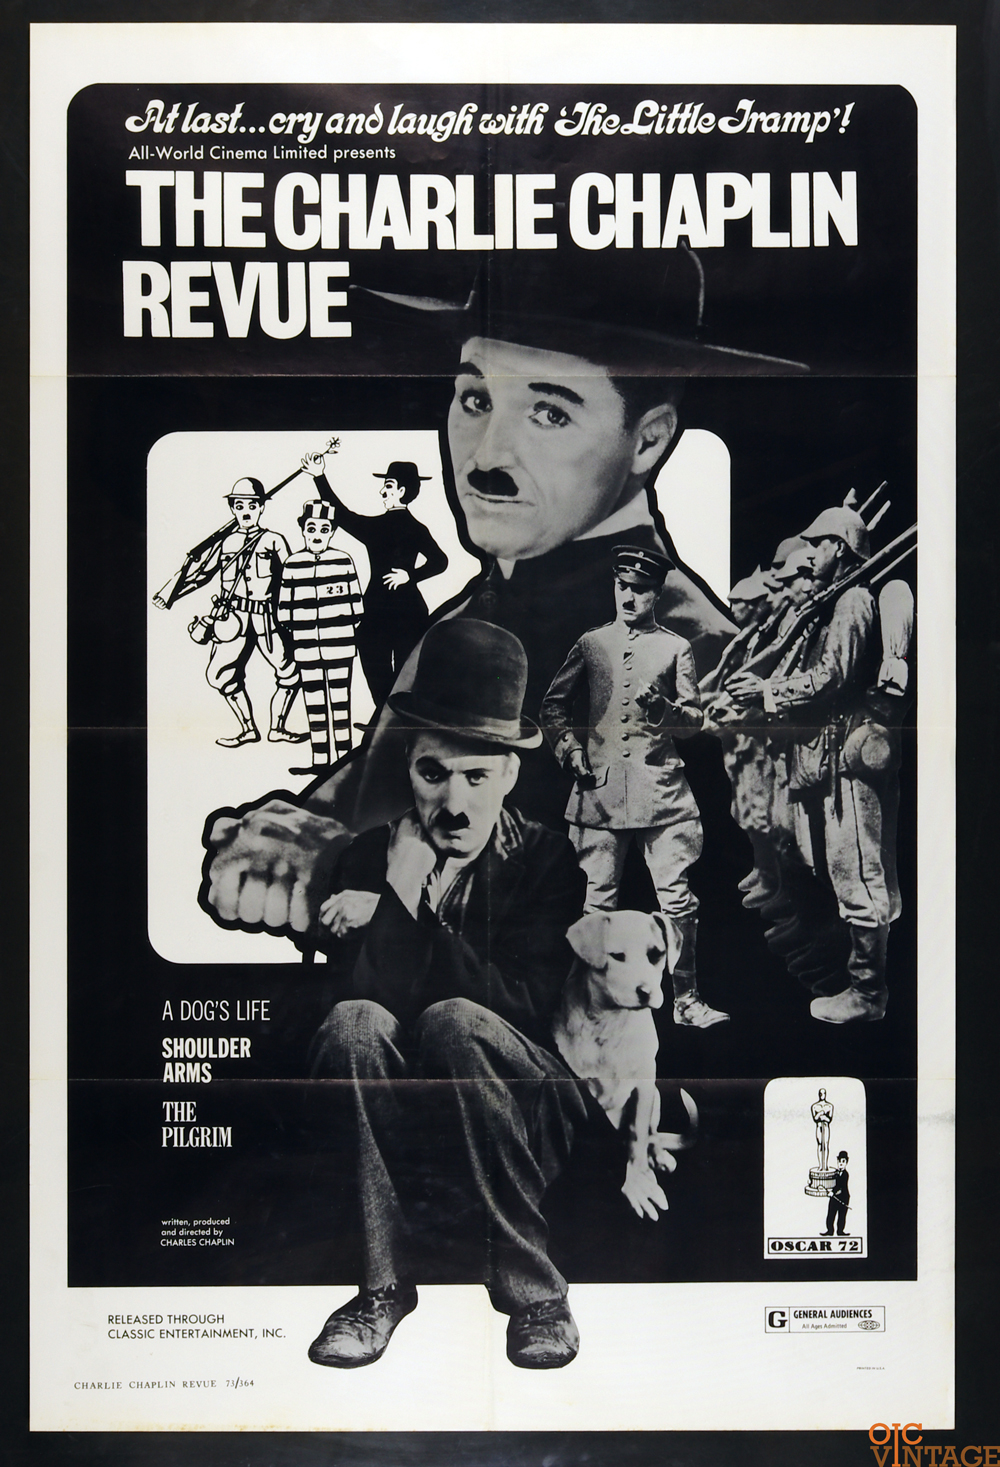 Charlie Chaplin Revue Movie Poster R1973 27x41 1 Sheet